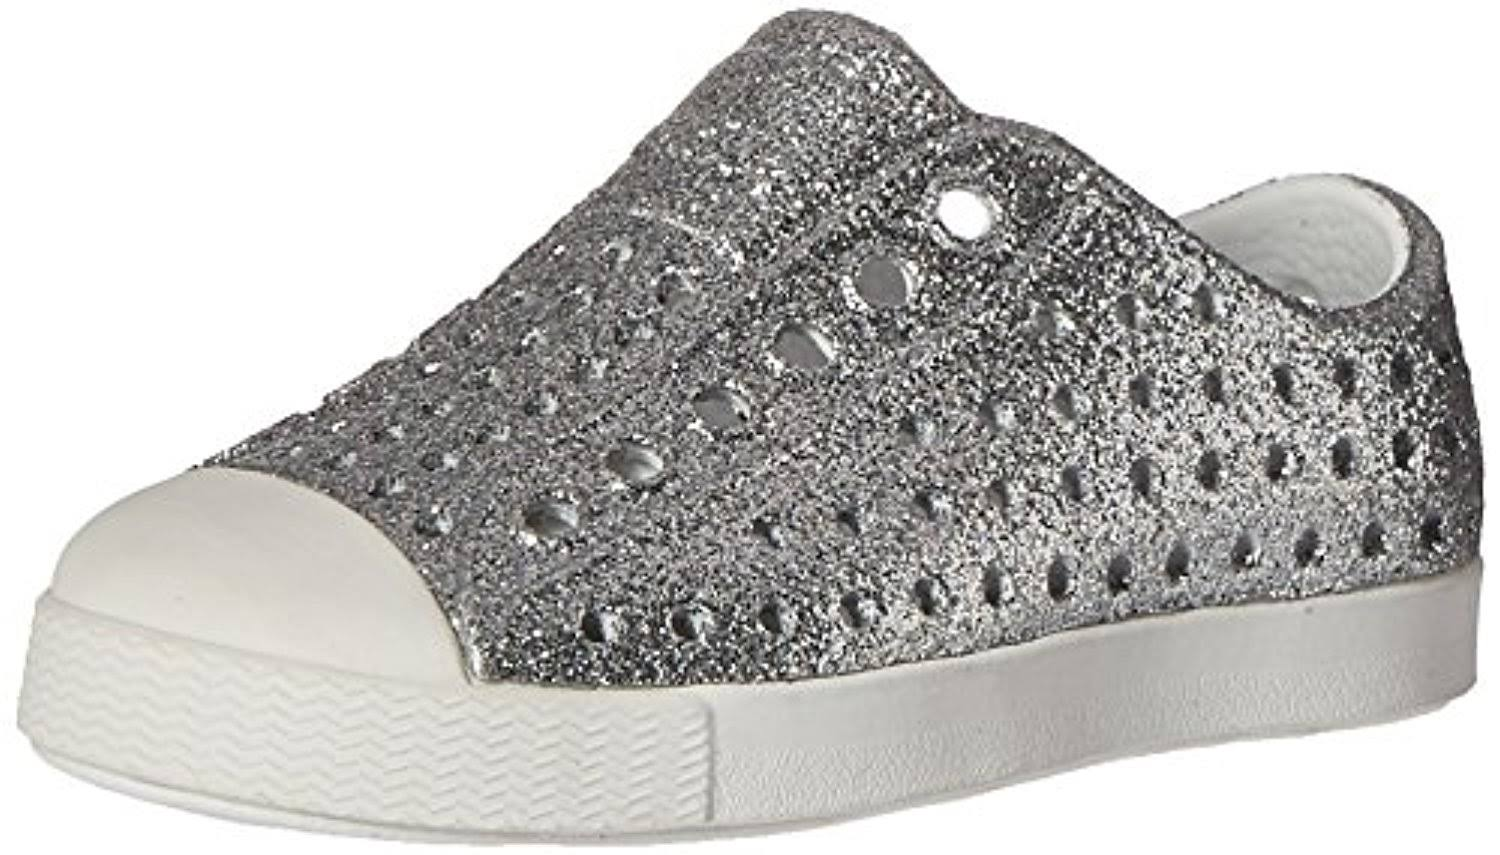 Native Jefferson Kids' Bling Shoes - Silver